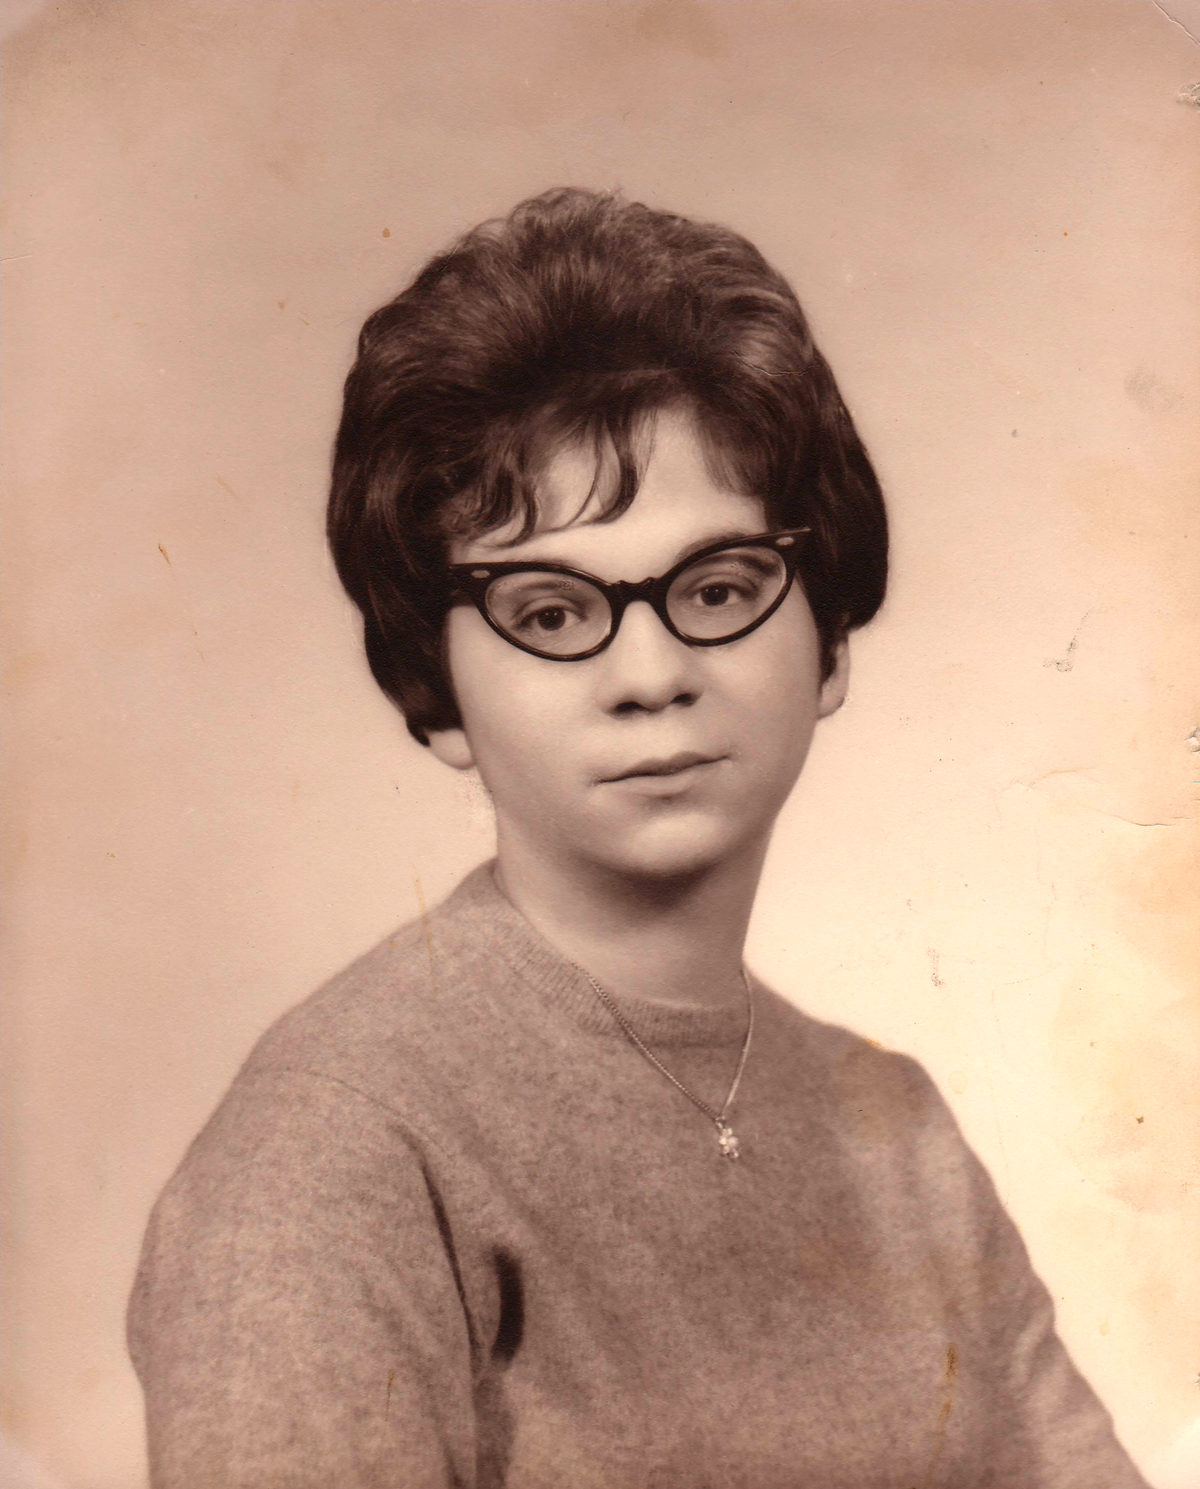 Nancy as a young adult.